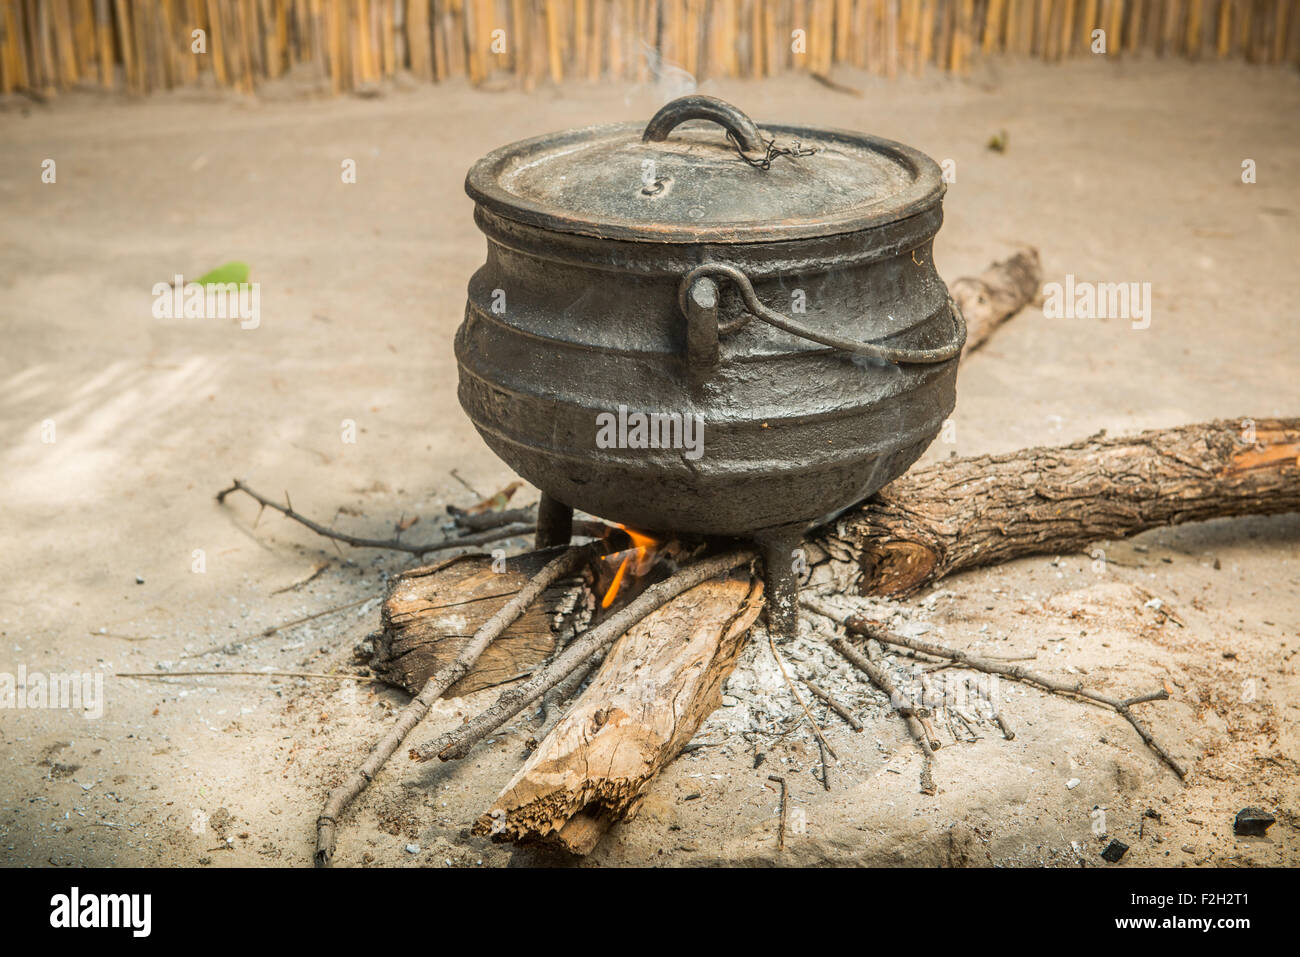 Cooking Sorghum for the Family over a fire in Botswana, Africa - Stock Image